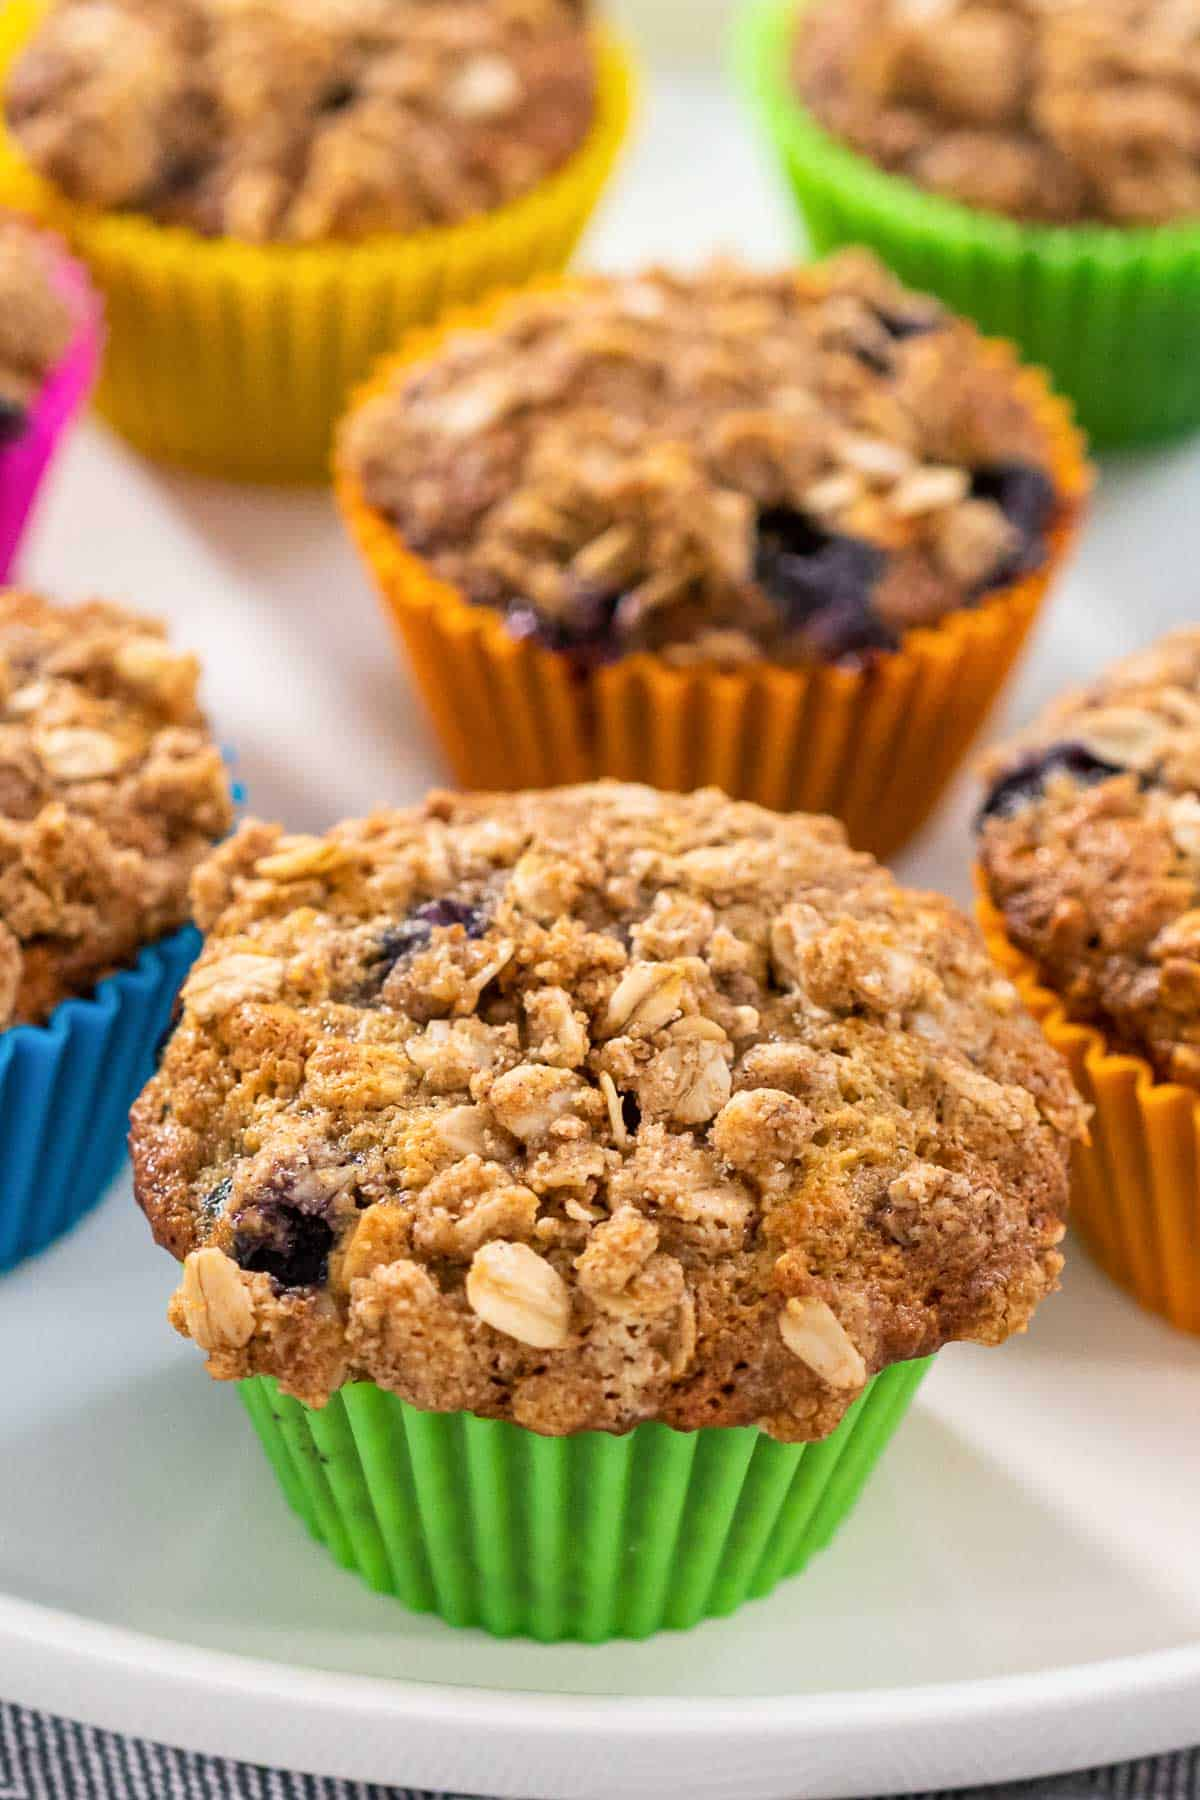 Blueberry Oat Muffin up close.